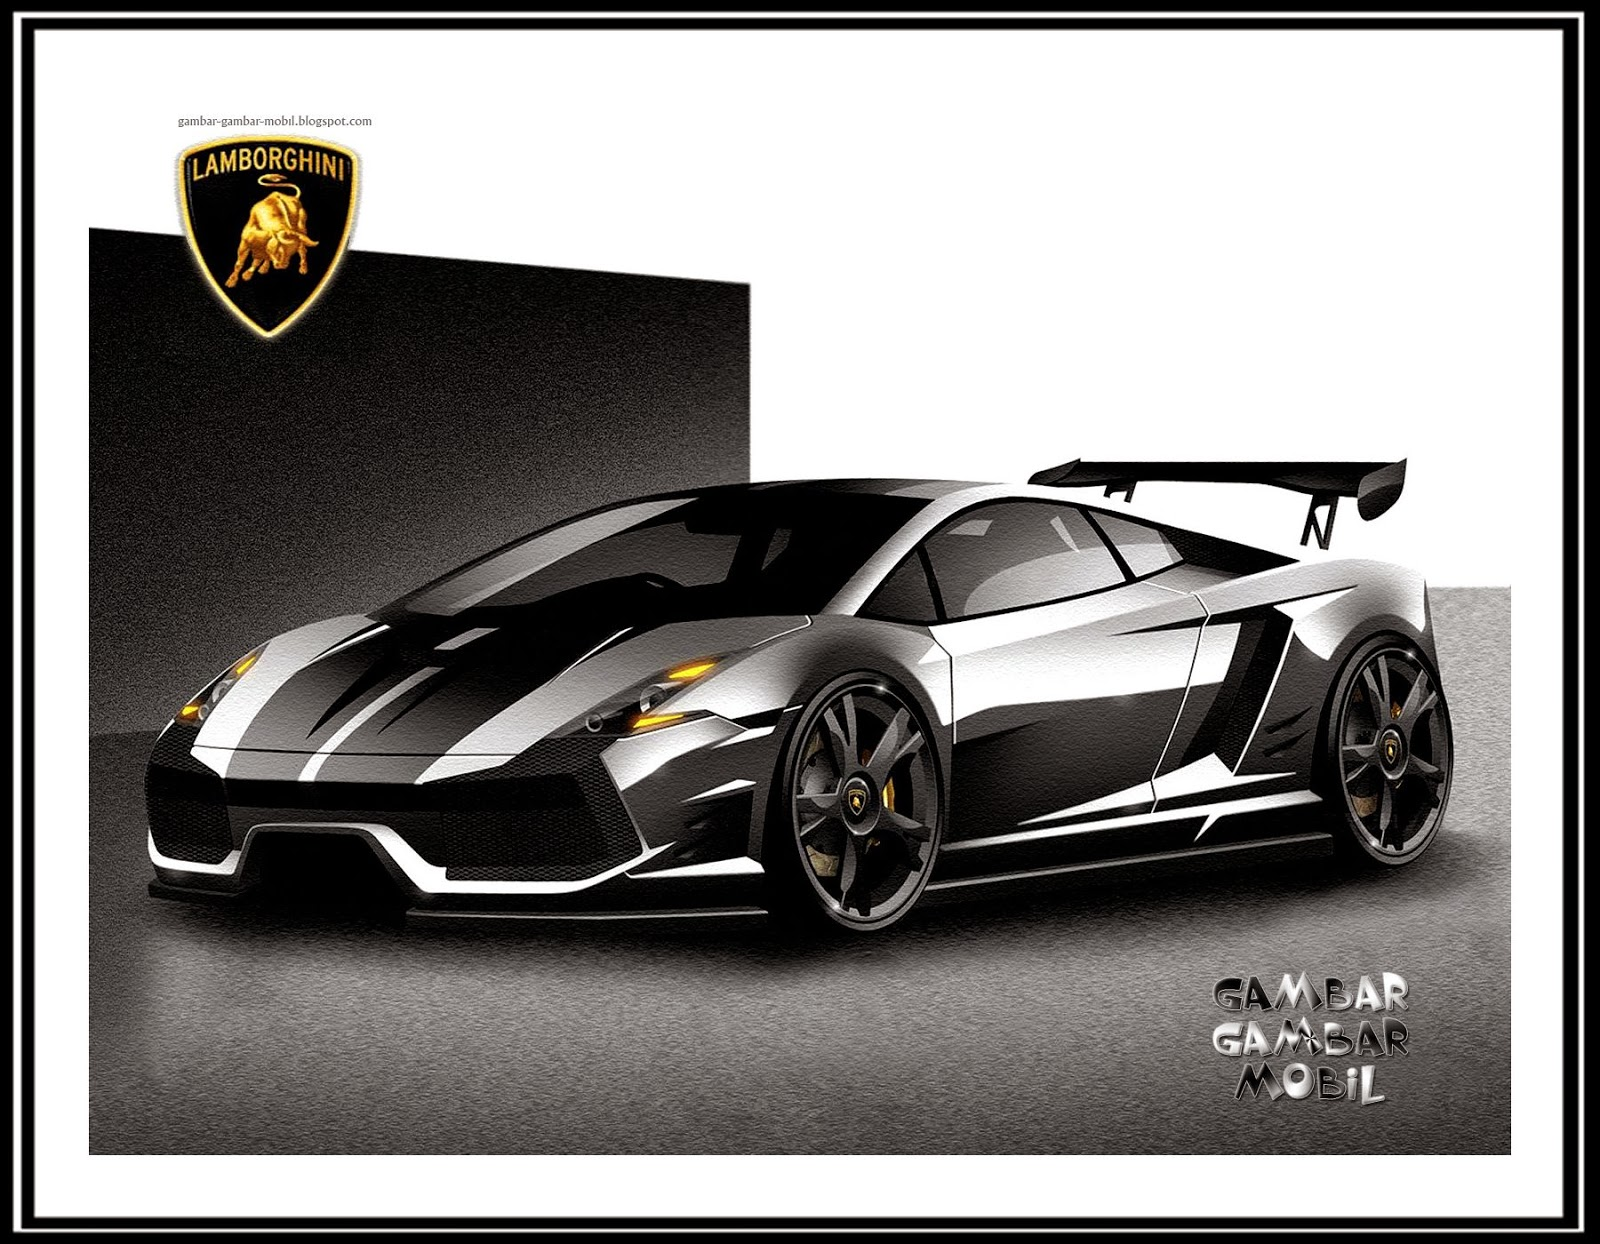 gambar mobil lamborghini gambar gambar mobil. Black Bedroom Furniture Sets. Home Design Ideas